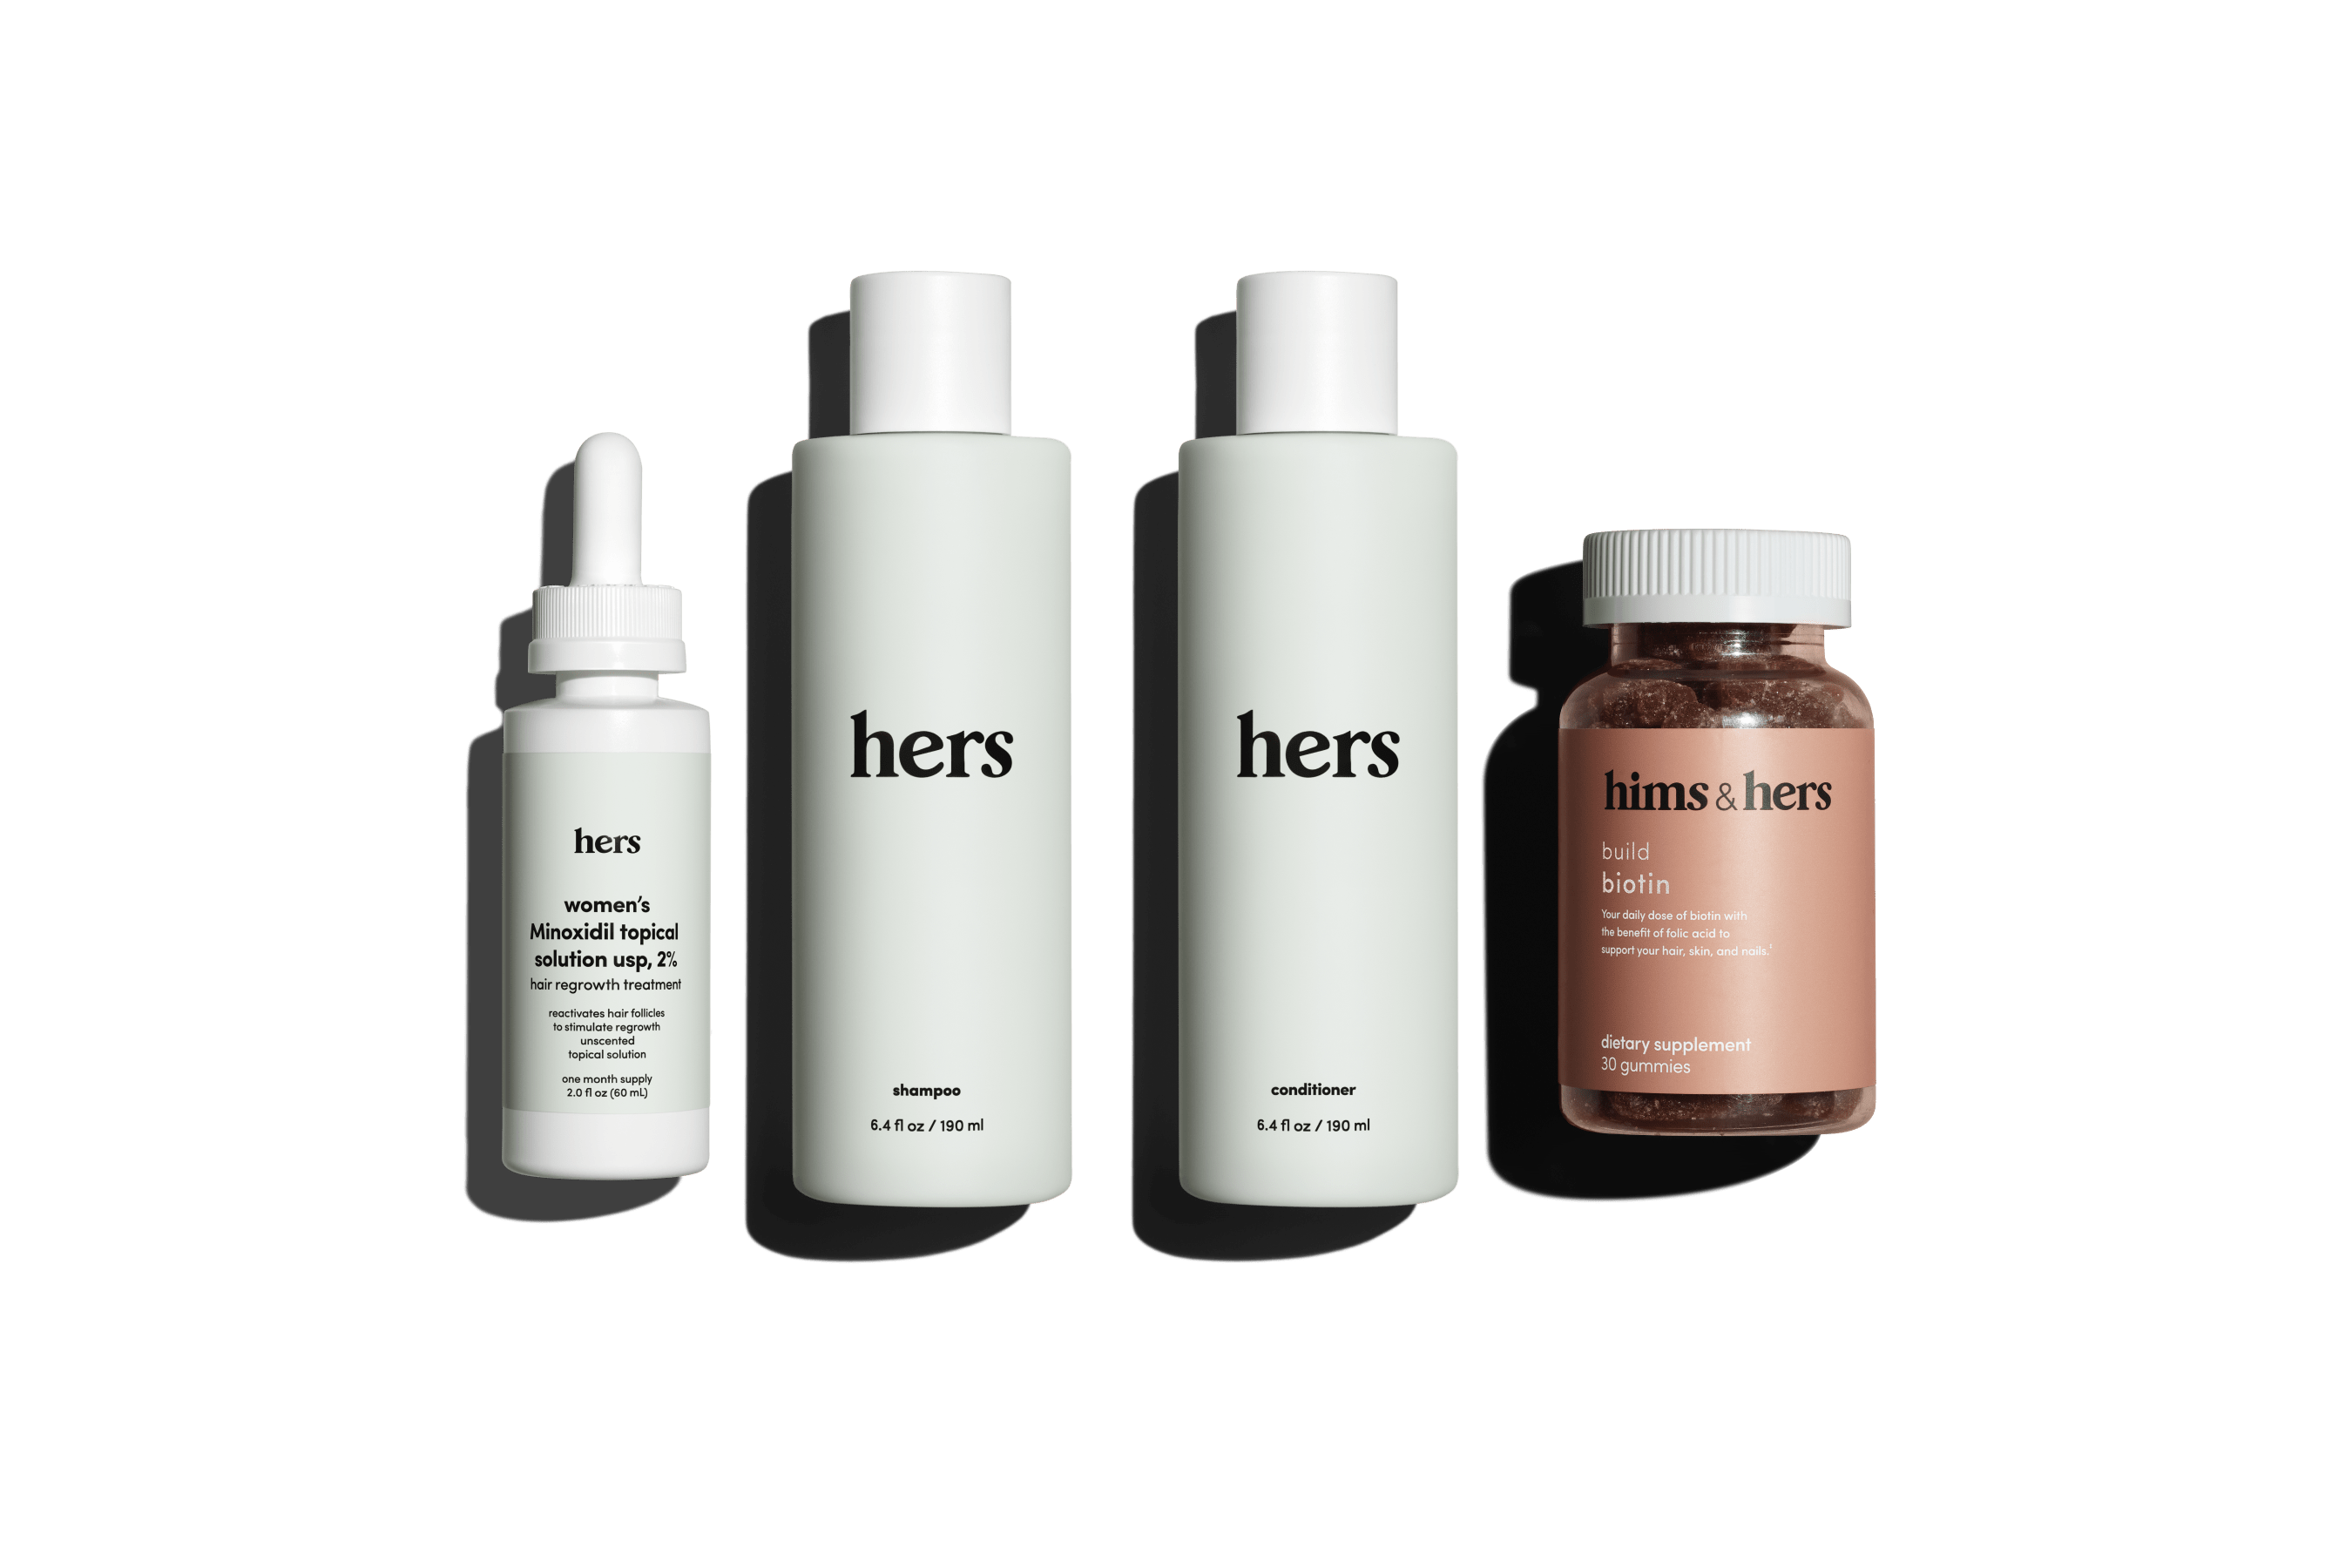 The complete hair kit